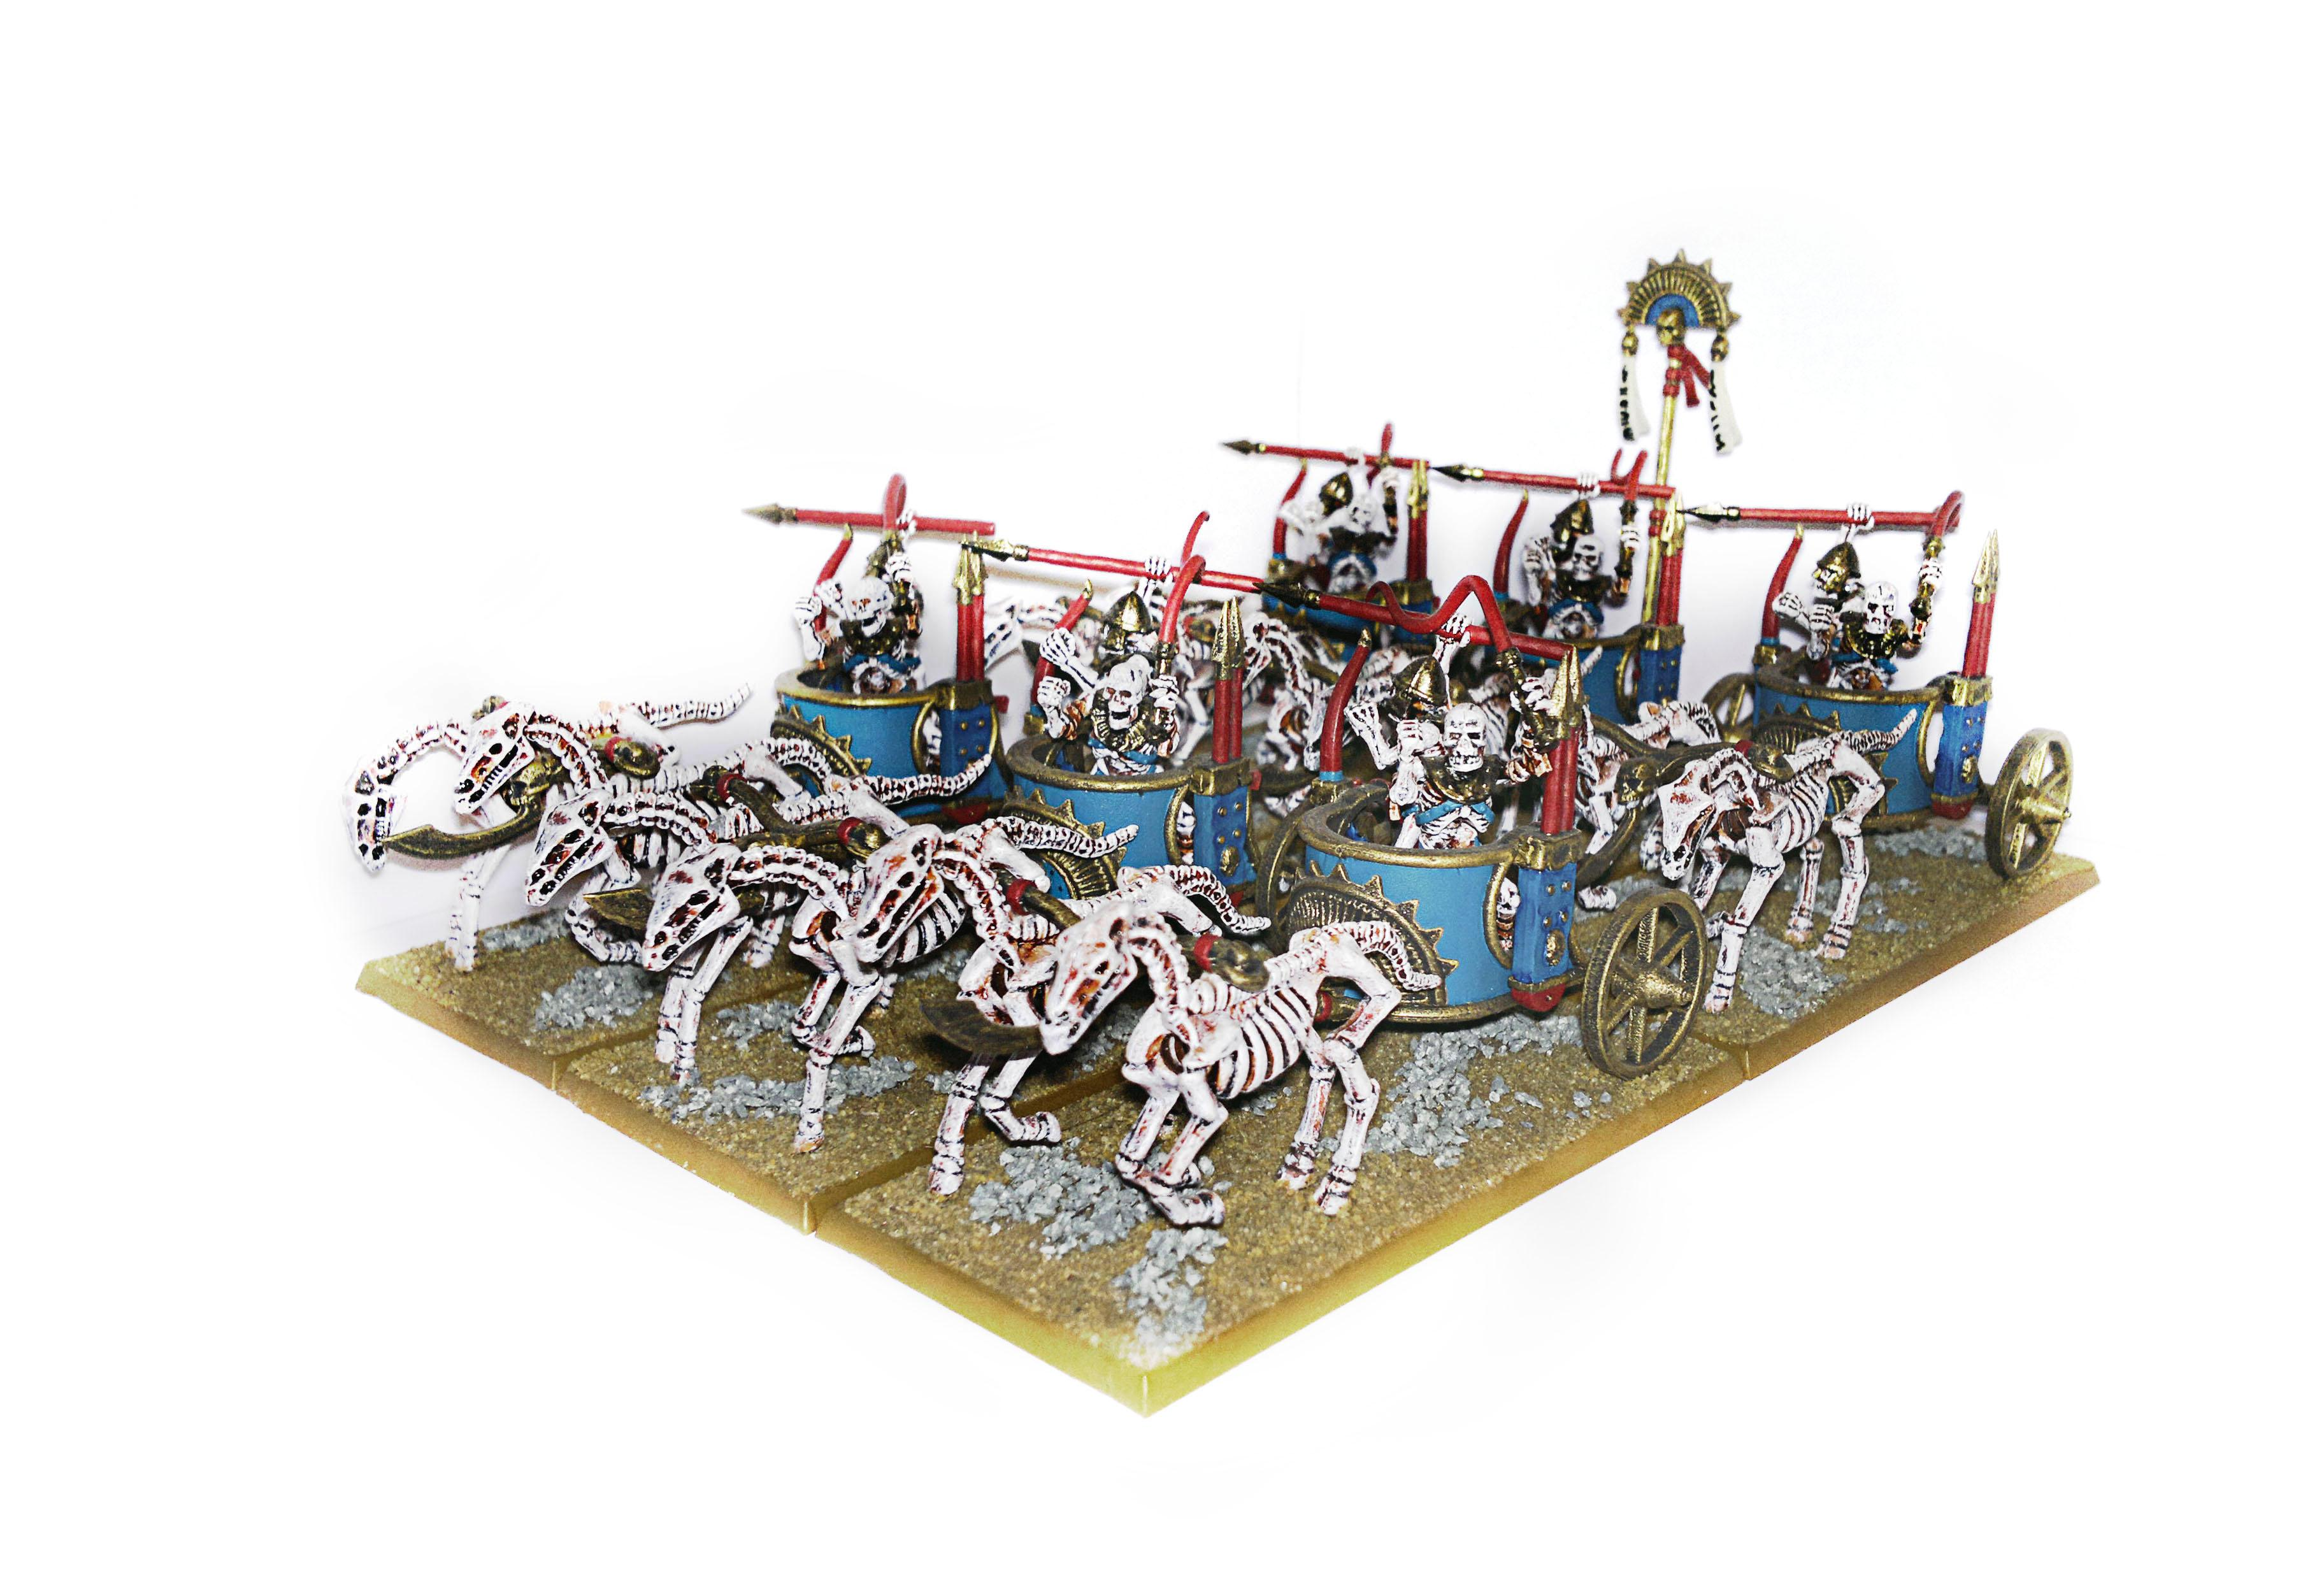 Chariots, Tomb Kings, Undead